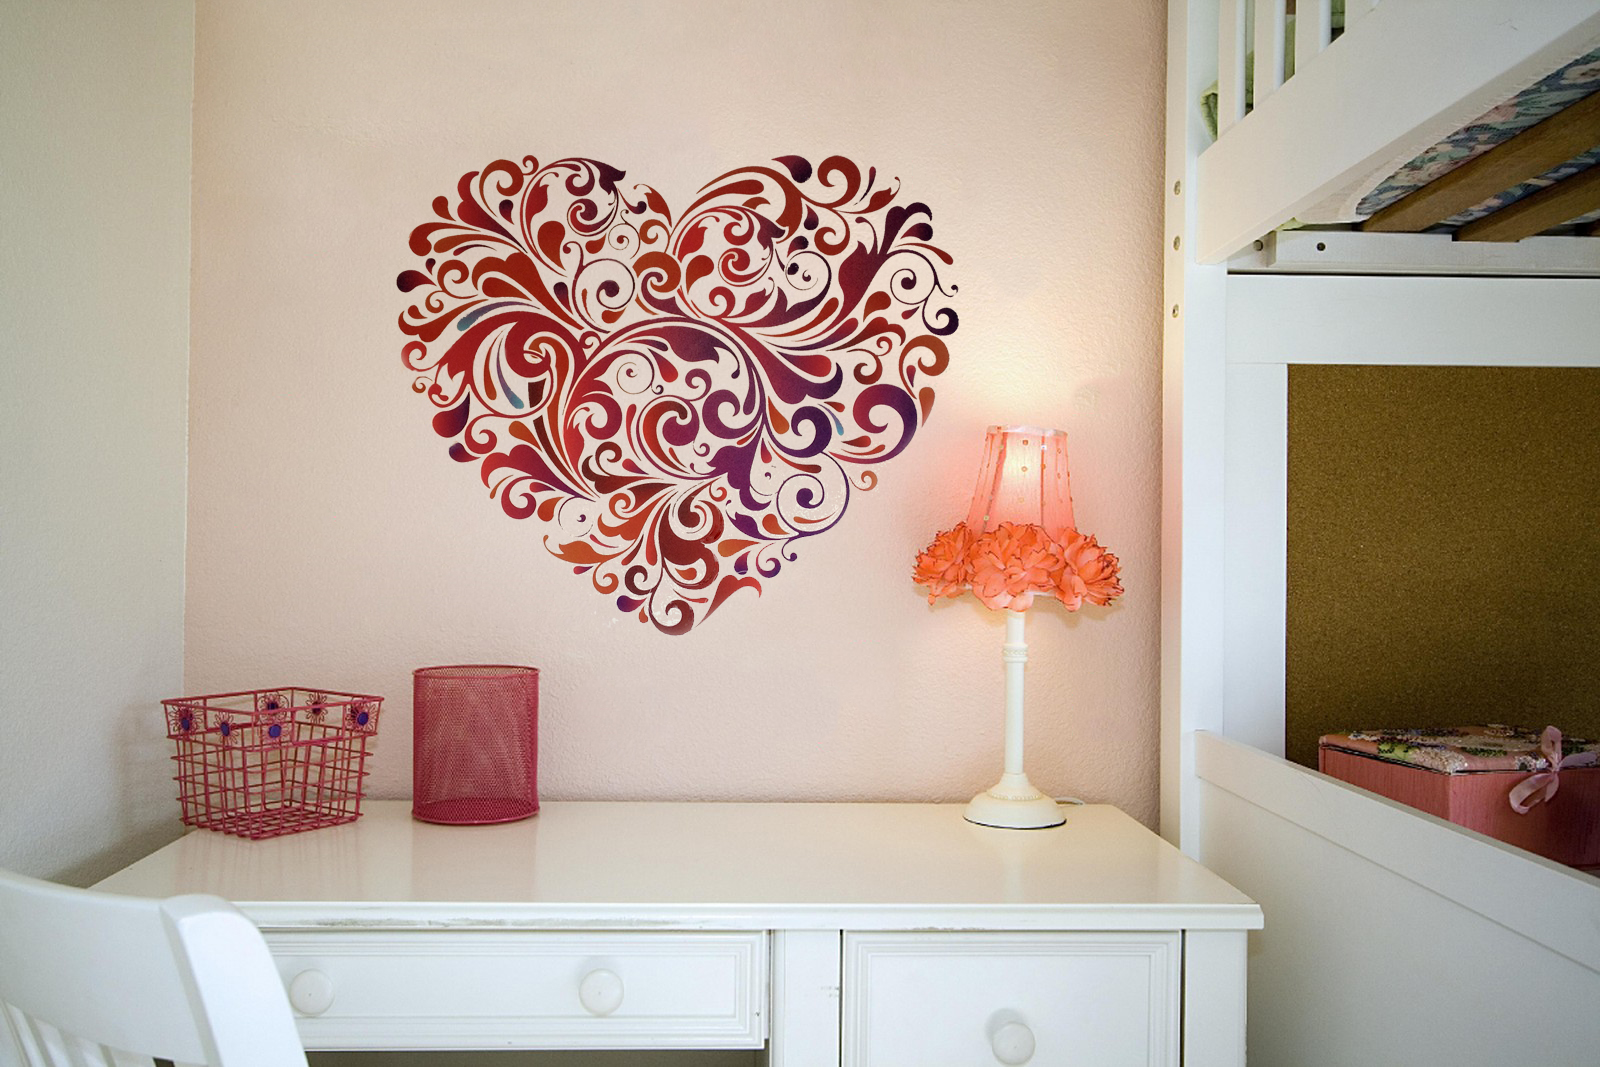 make your home beautiful with unique wall decor - Unique Wall Decor